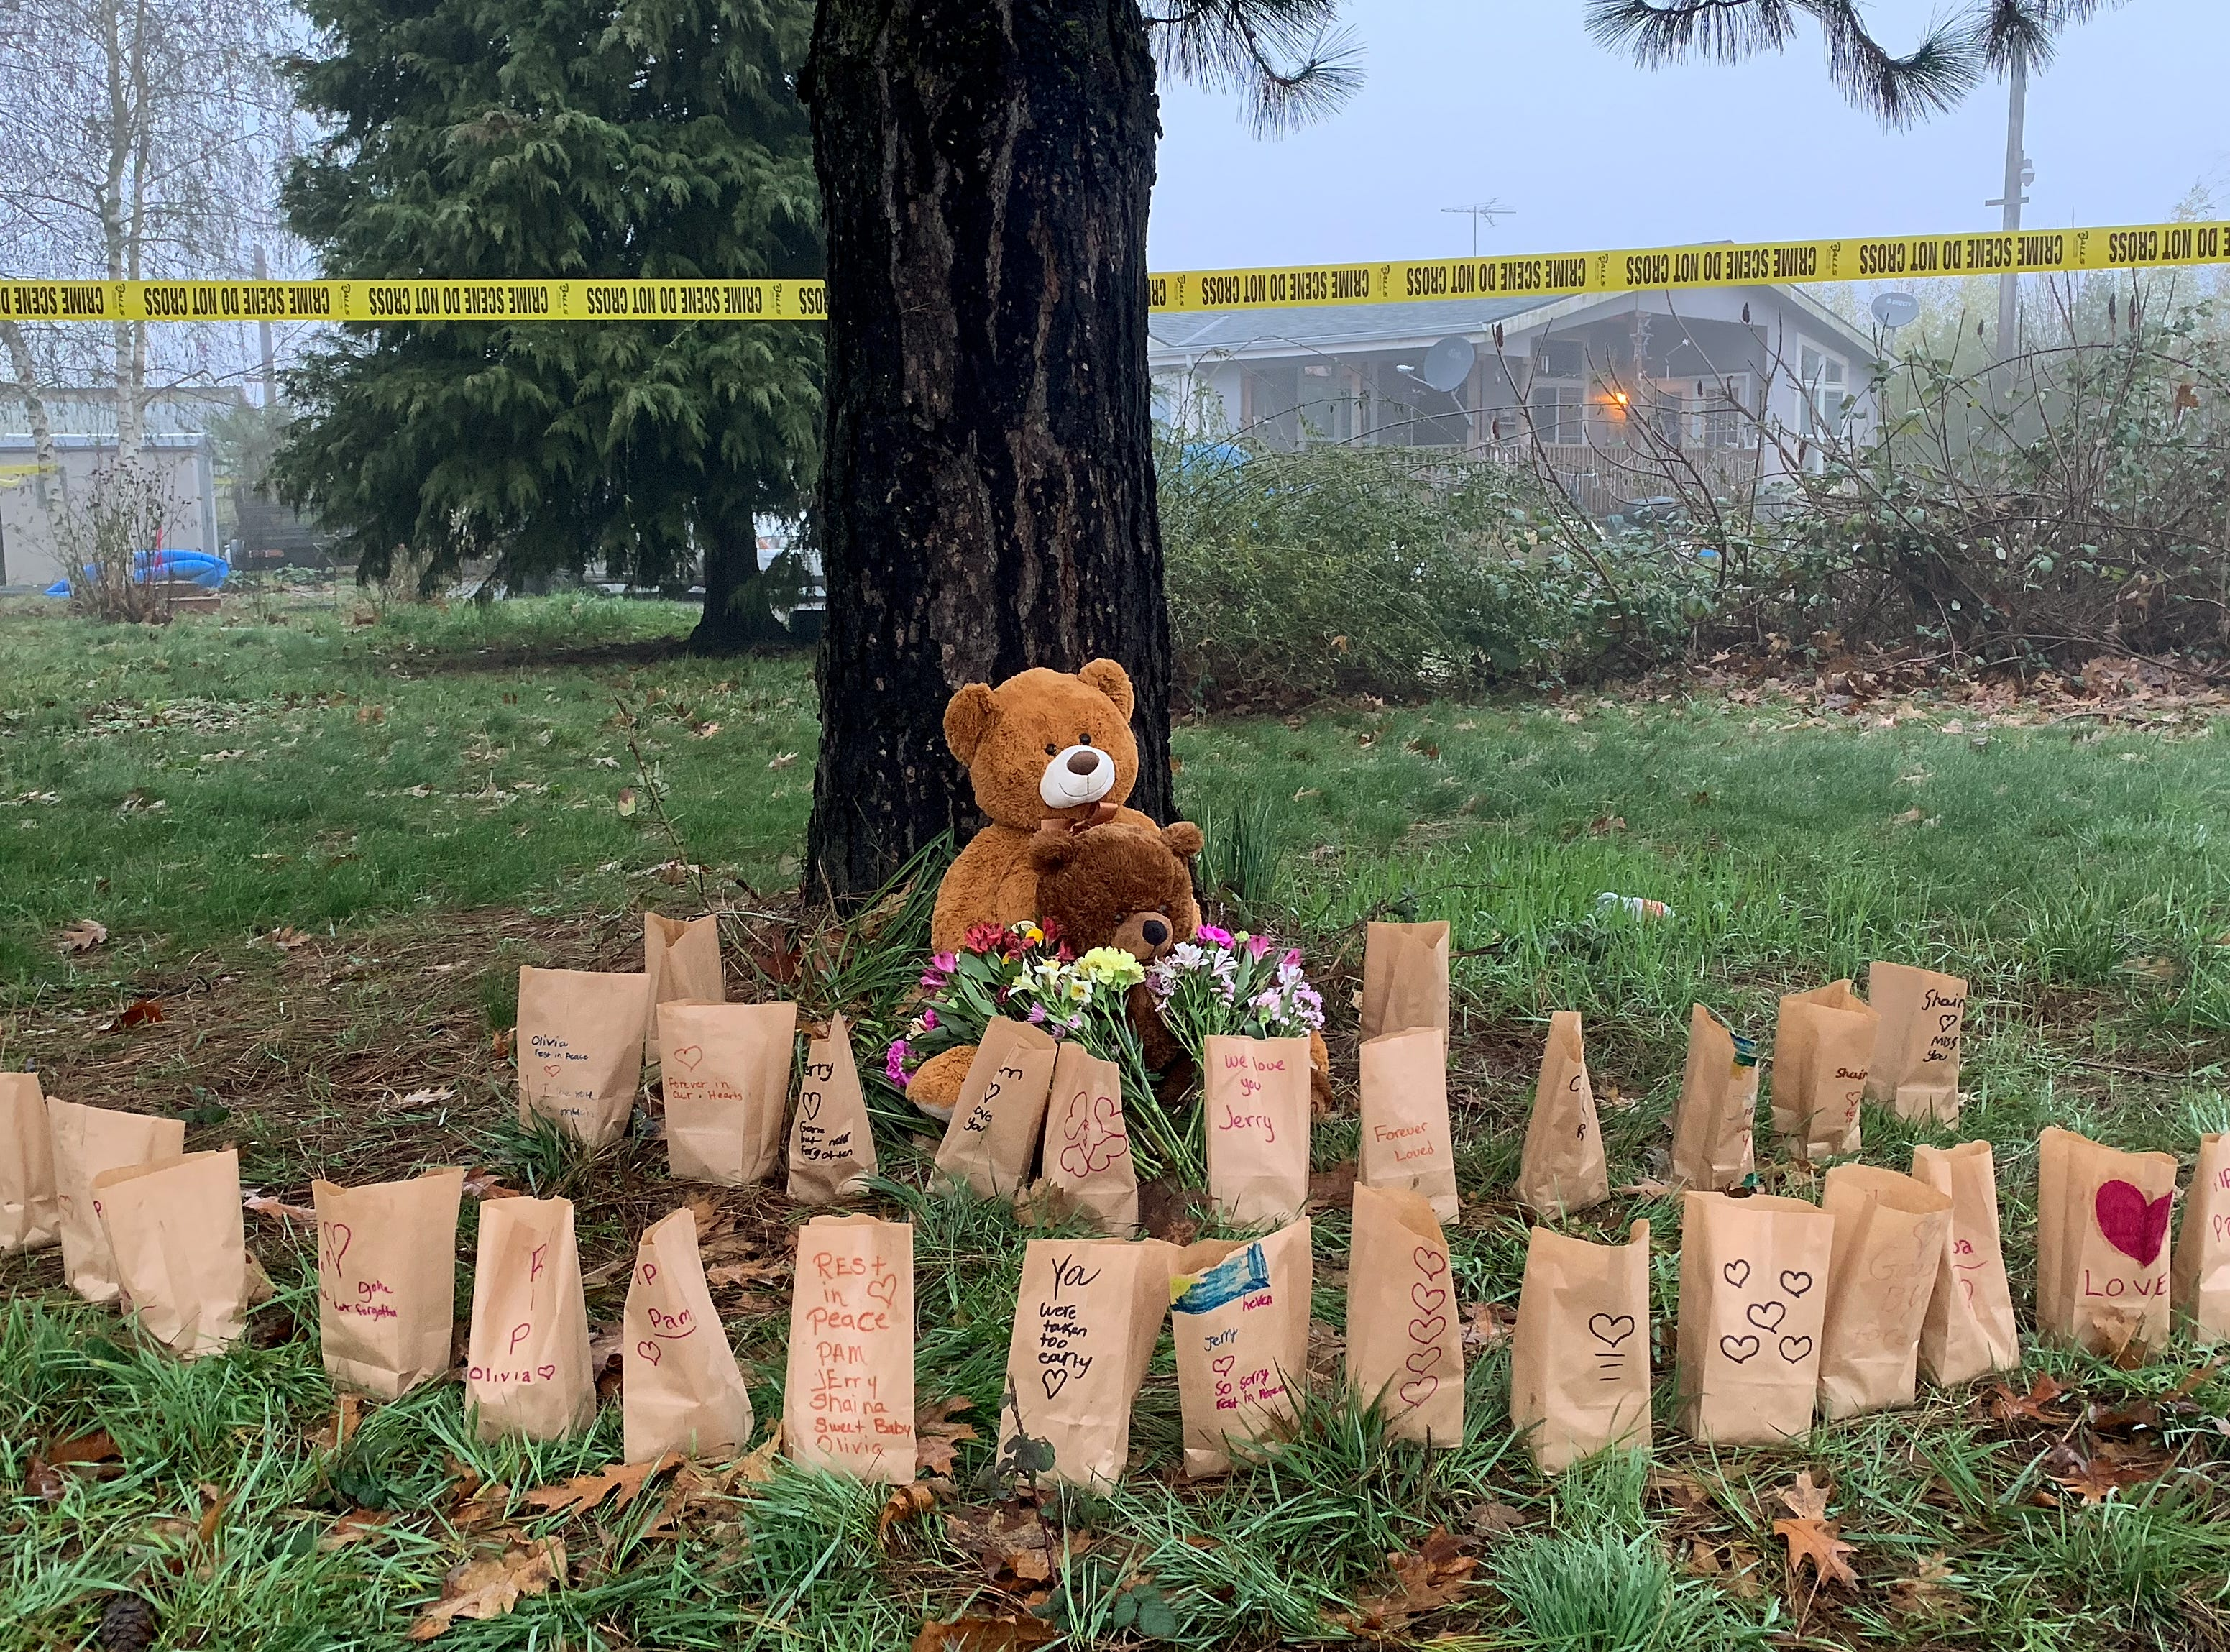 A memorial is growing for the victims of the quadruple homicide in the 32000 block of Barlow Rd. S near Woodburn, Oregon, over the weekend. Crime scene tape still outlines the property following the incident where the suspect, Mark Gago was shot and killed by deputies on Saturday night. A teddy bear, flowers and luminaries with messages to the victims surround a tree at the front of the property Monday morning, January 21, 2019.